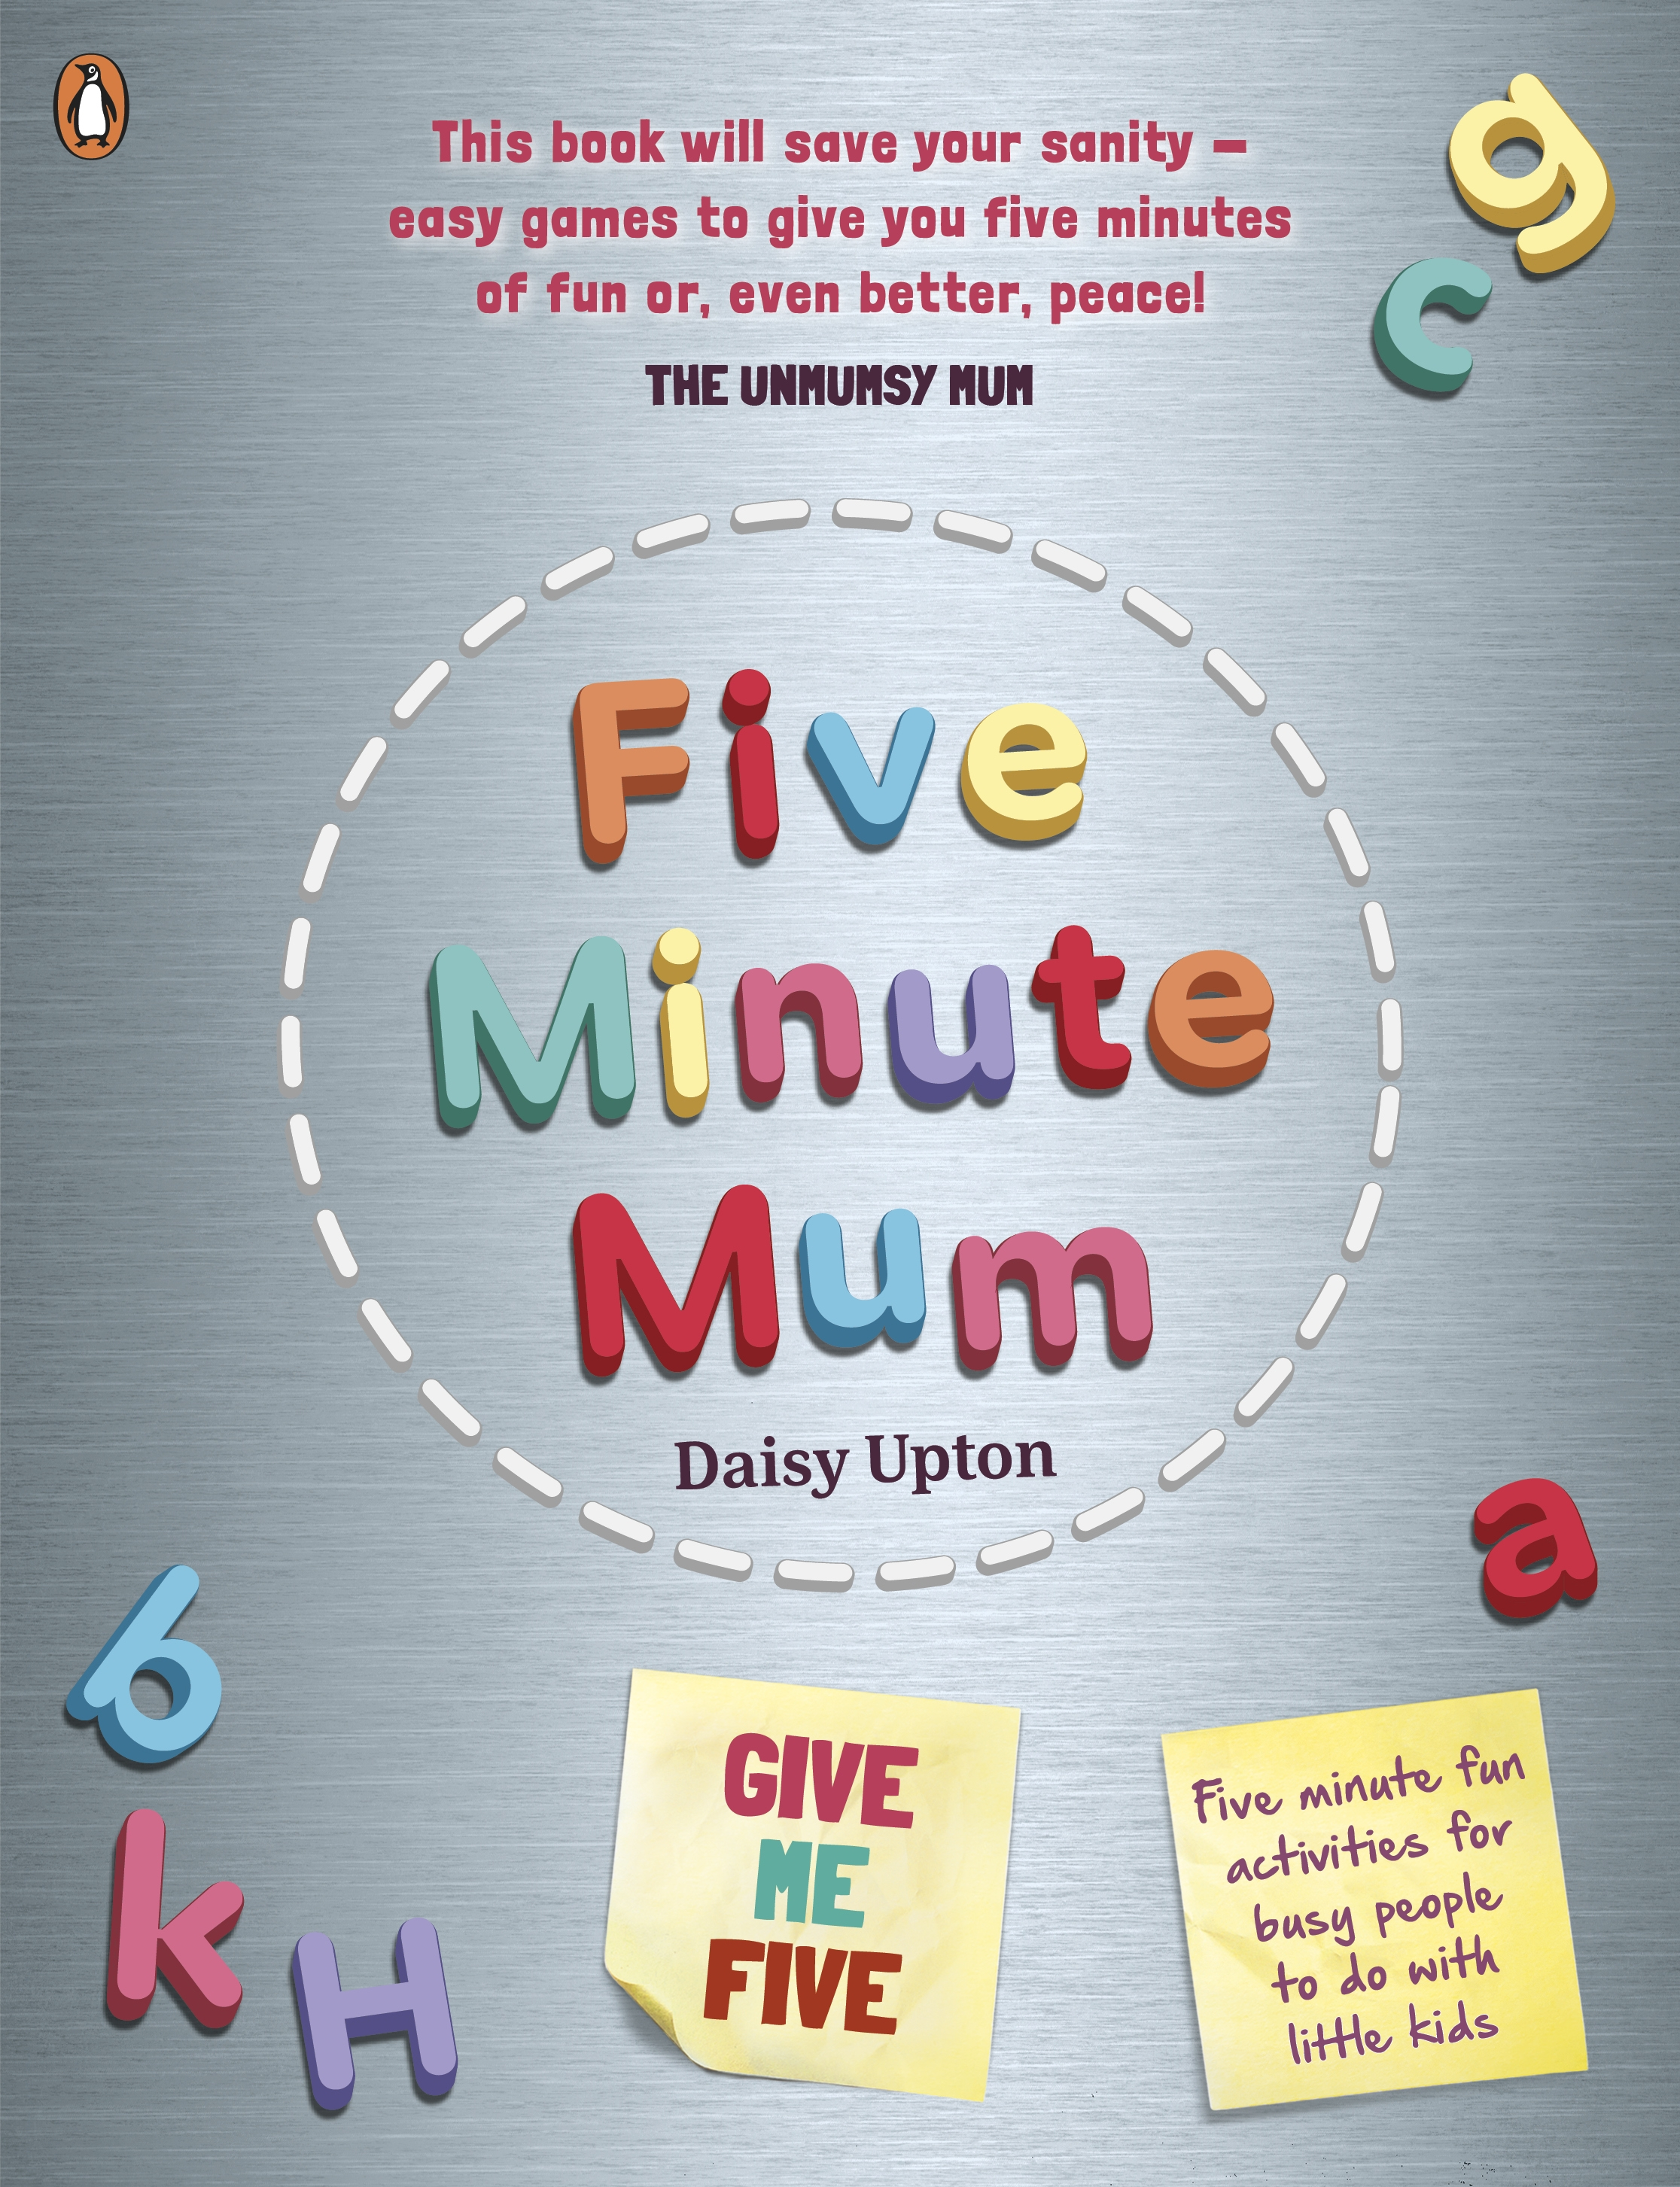 Five Minute Mum: Give Me Five Five minute, easy, fun games for busy people to do with little kids